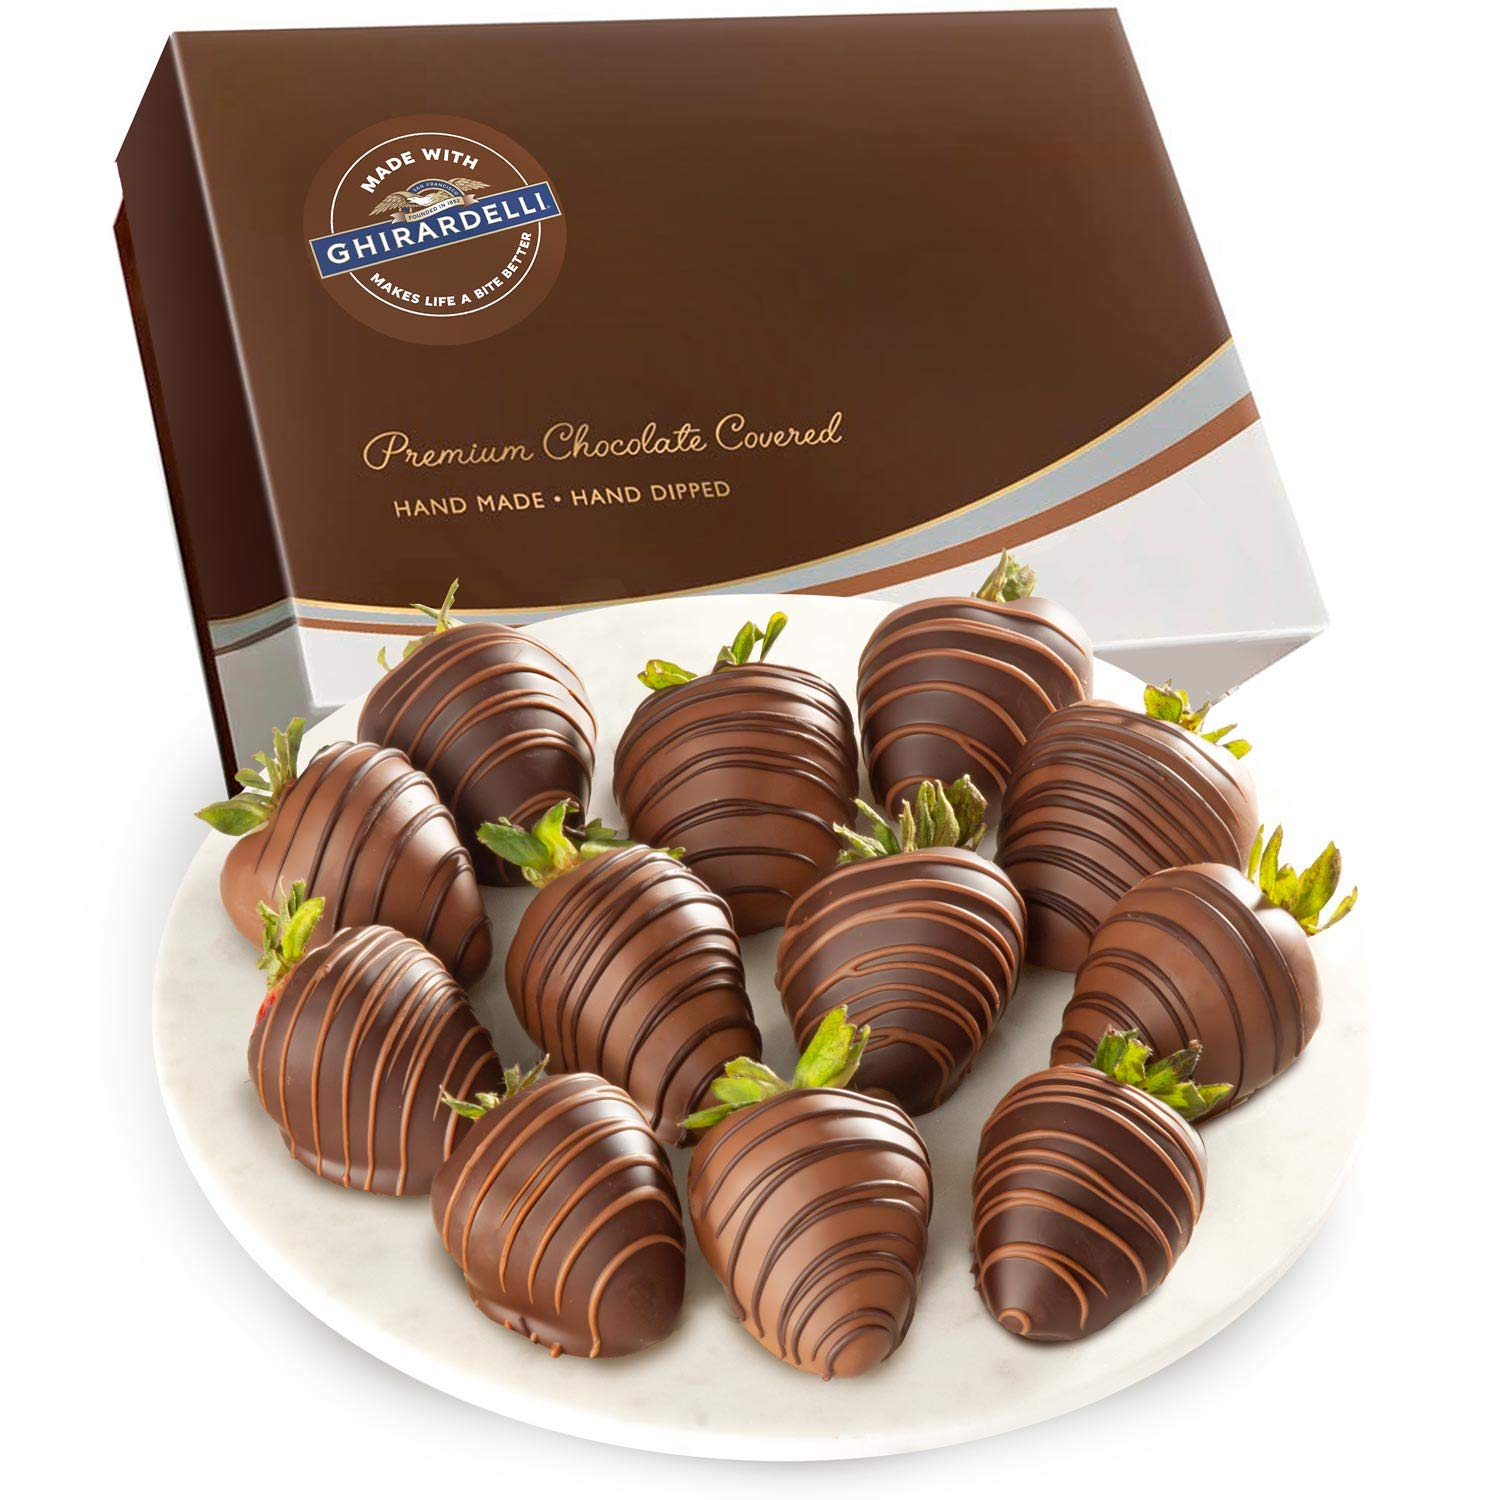 Made With Ghirardelli Chocolate Covered Strawberries, 12Count by Golden State Fruit